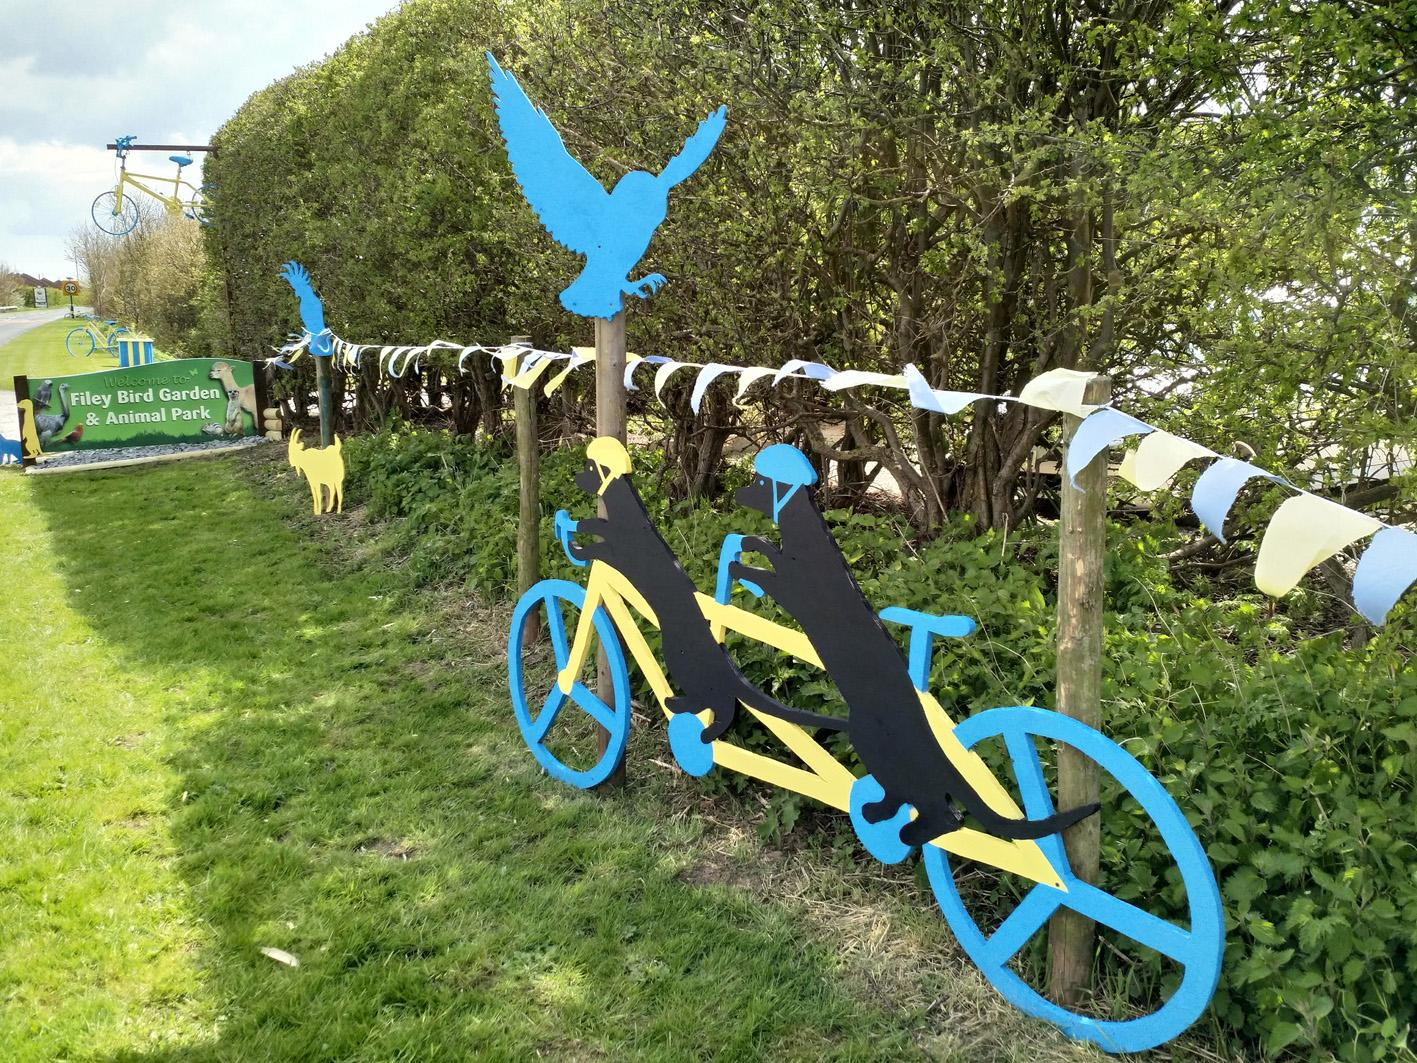 Picture of yellow and blue wooden animal street decorations at Filey